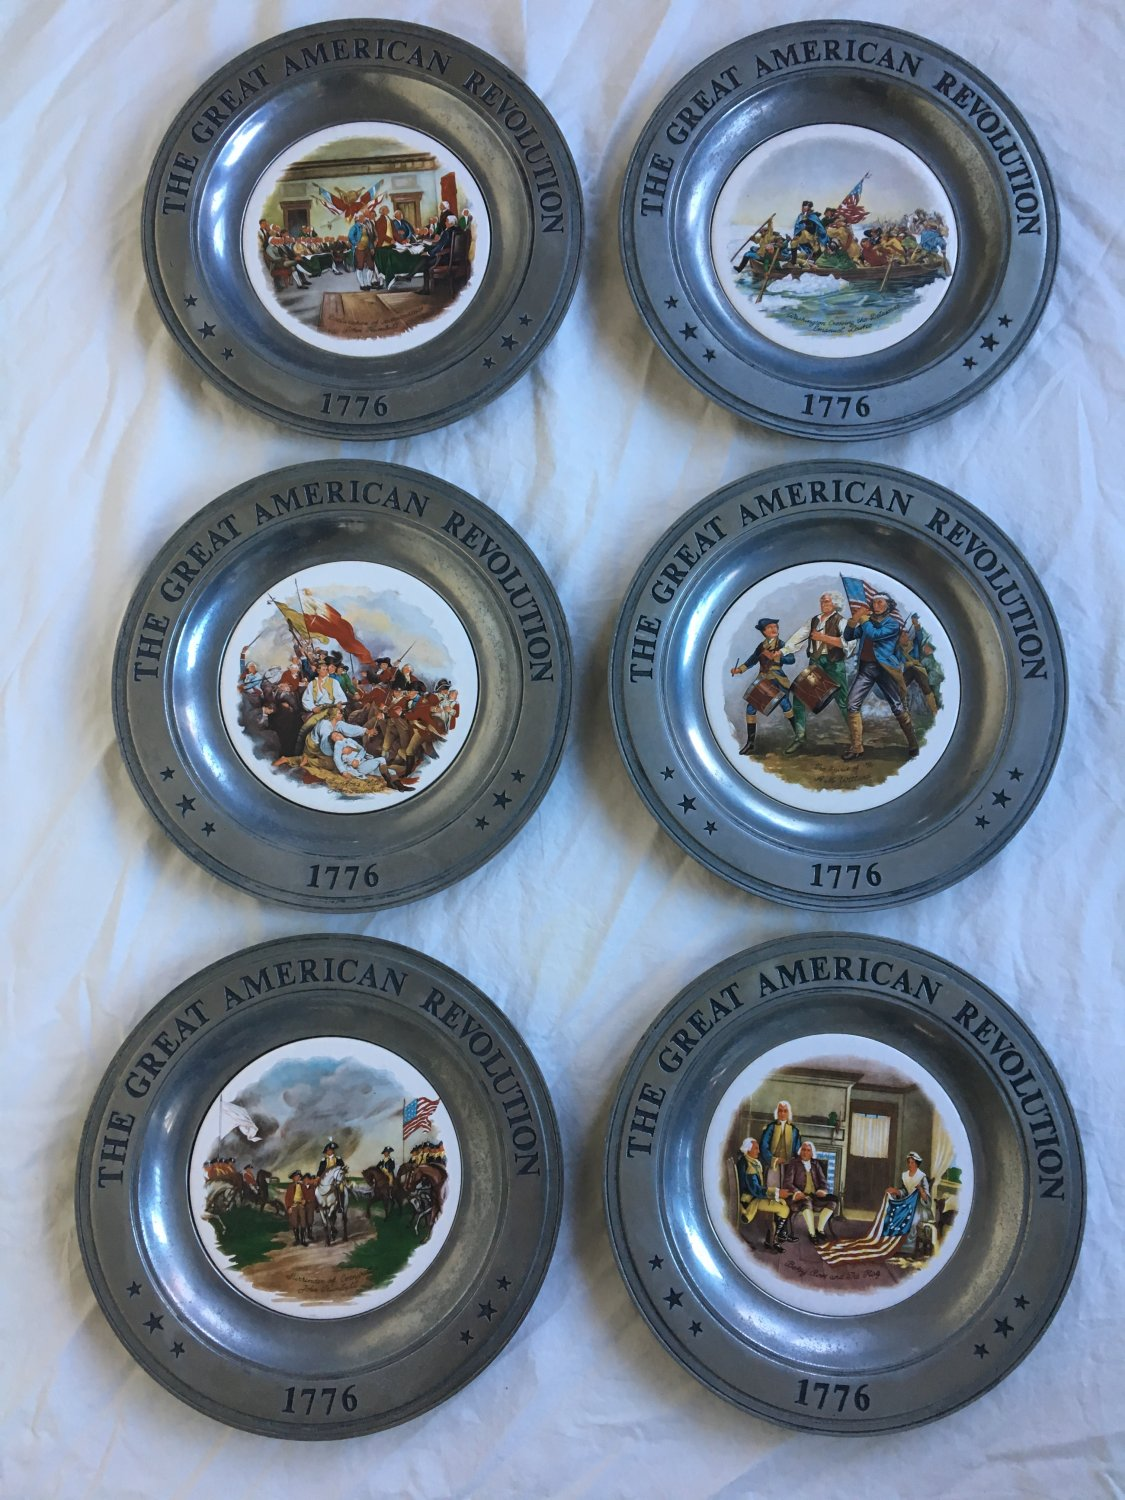 Set of Six American Revolution 1776 Commemorative Plates Pewter Ceramic Artwork